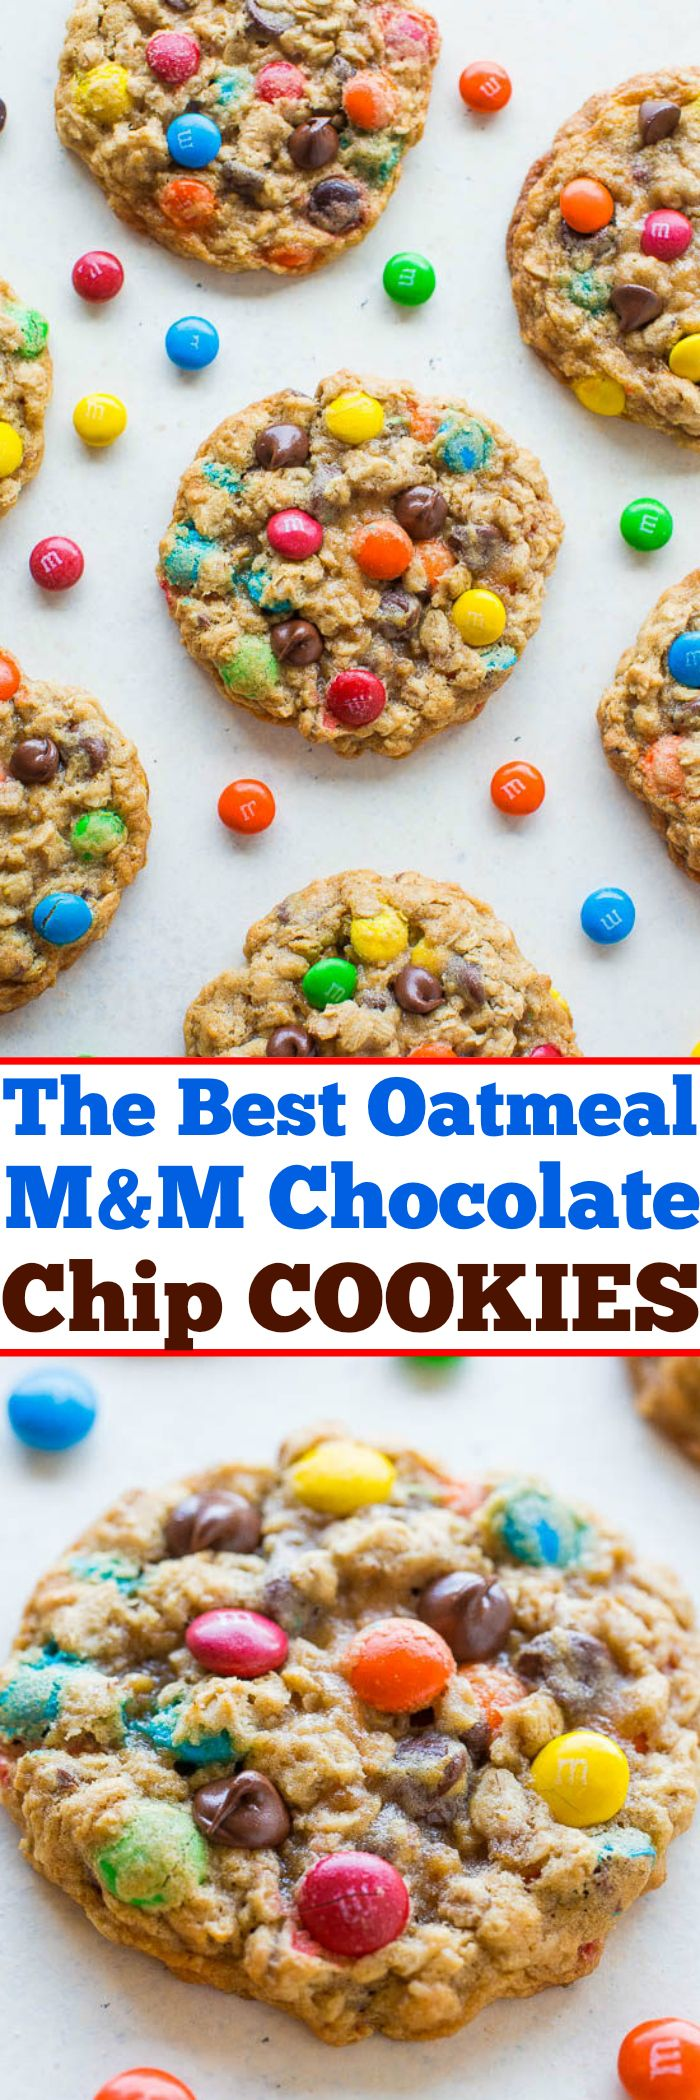 The Best Oatmeal M&M Chocolate Chip Cookies - Averie Cooks